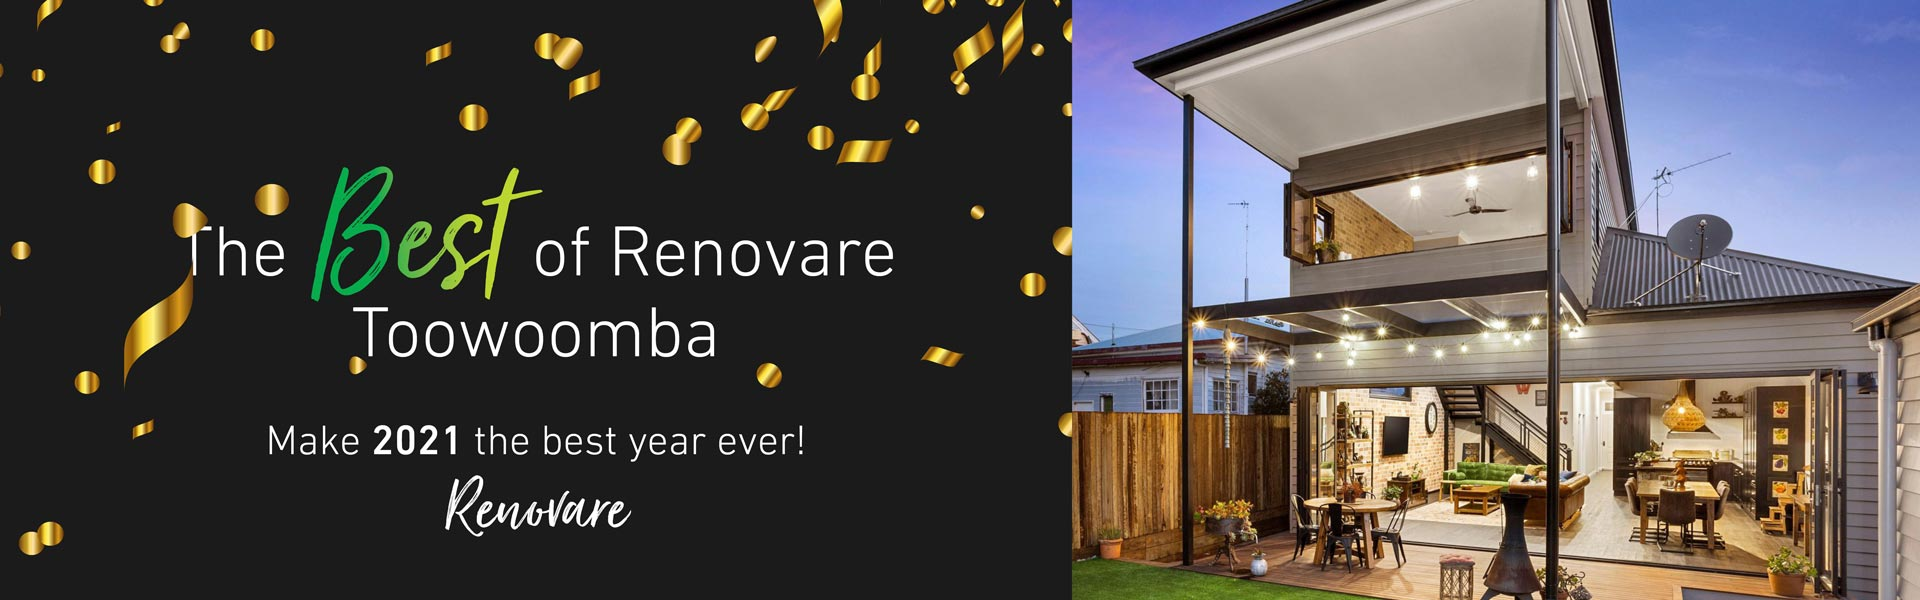 The-best-of-Renovare-Toowoomba-feature